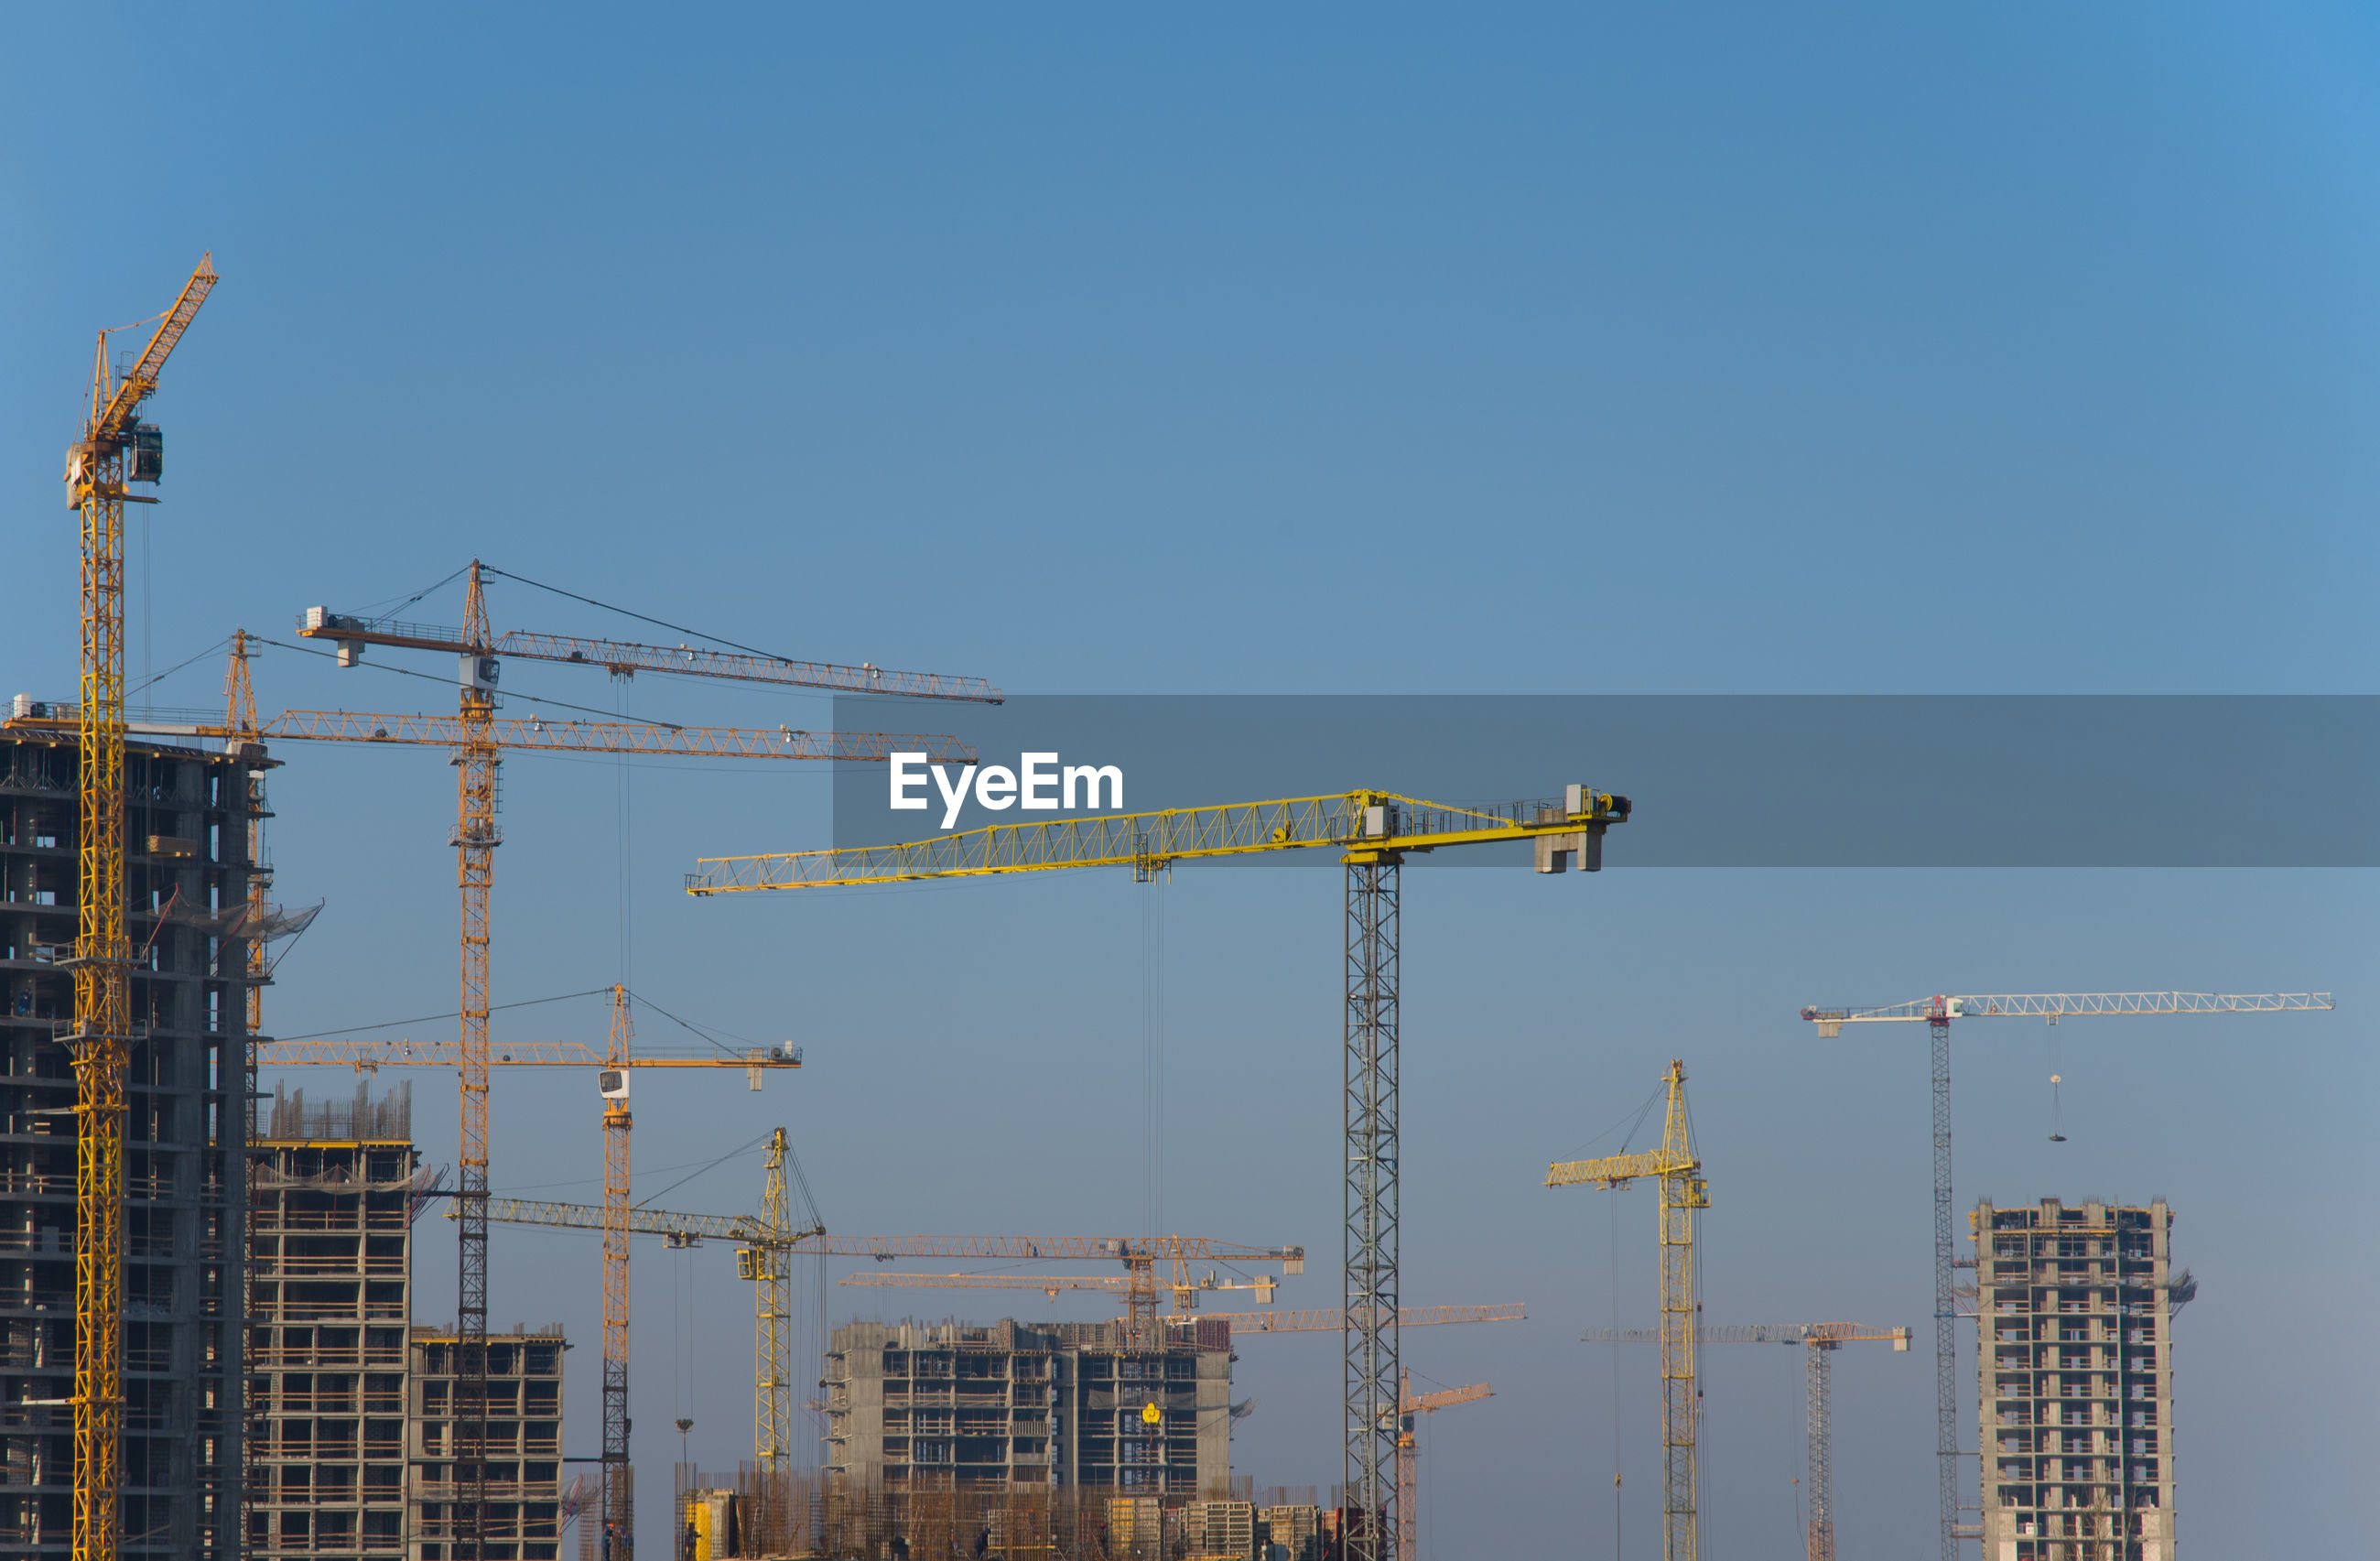 CRANES AND BUILDINGS AGAINST CLEAR BLUE SKY